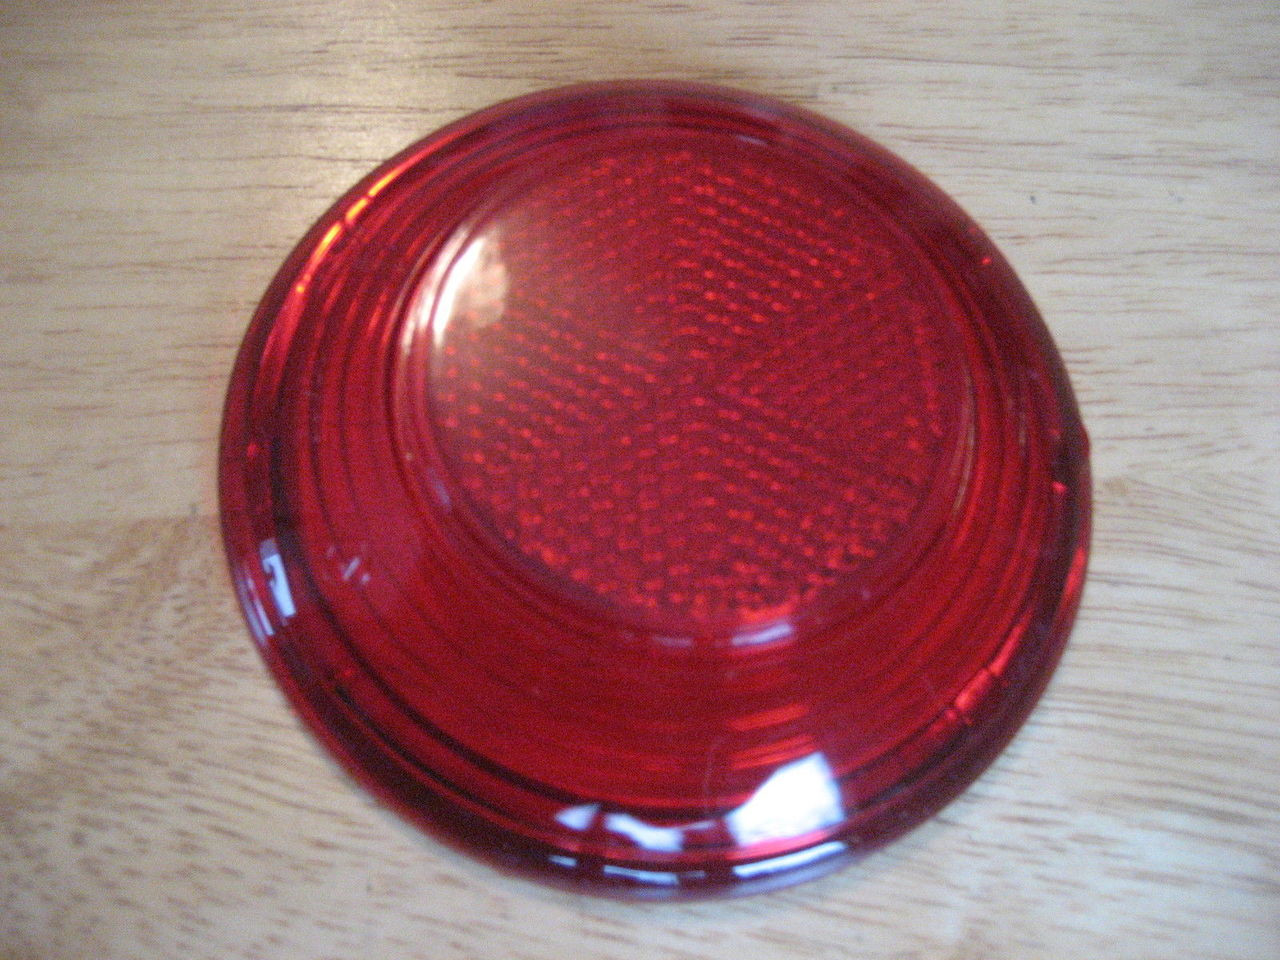 VINTAGE BMW TAIL LIGHT LENS TO FIT THE COFFEE CAN ON /2 REAR FENDERS - 63 54 8 054 136